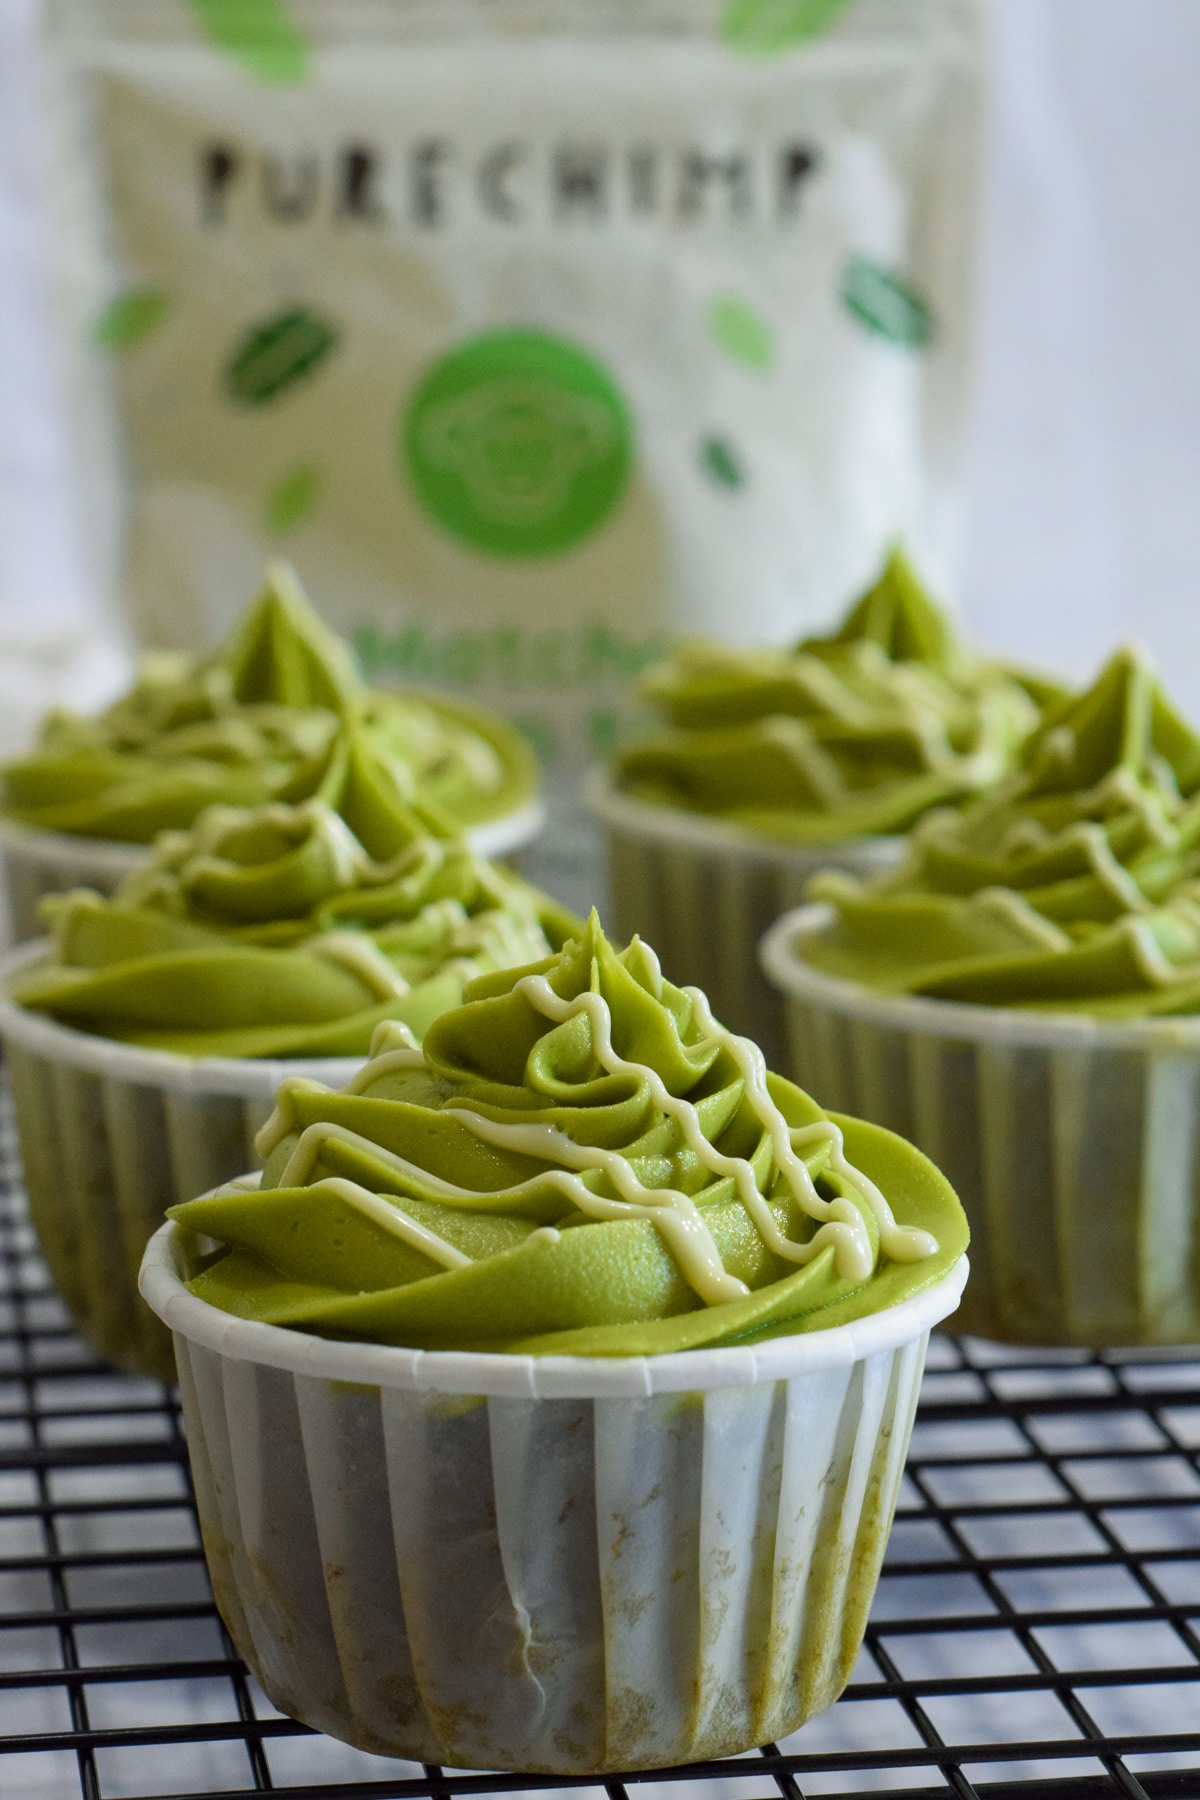 Matcha green tea cupcakes with a matcha buttercream frosting and white chocolate drizzle in white baking cups